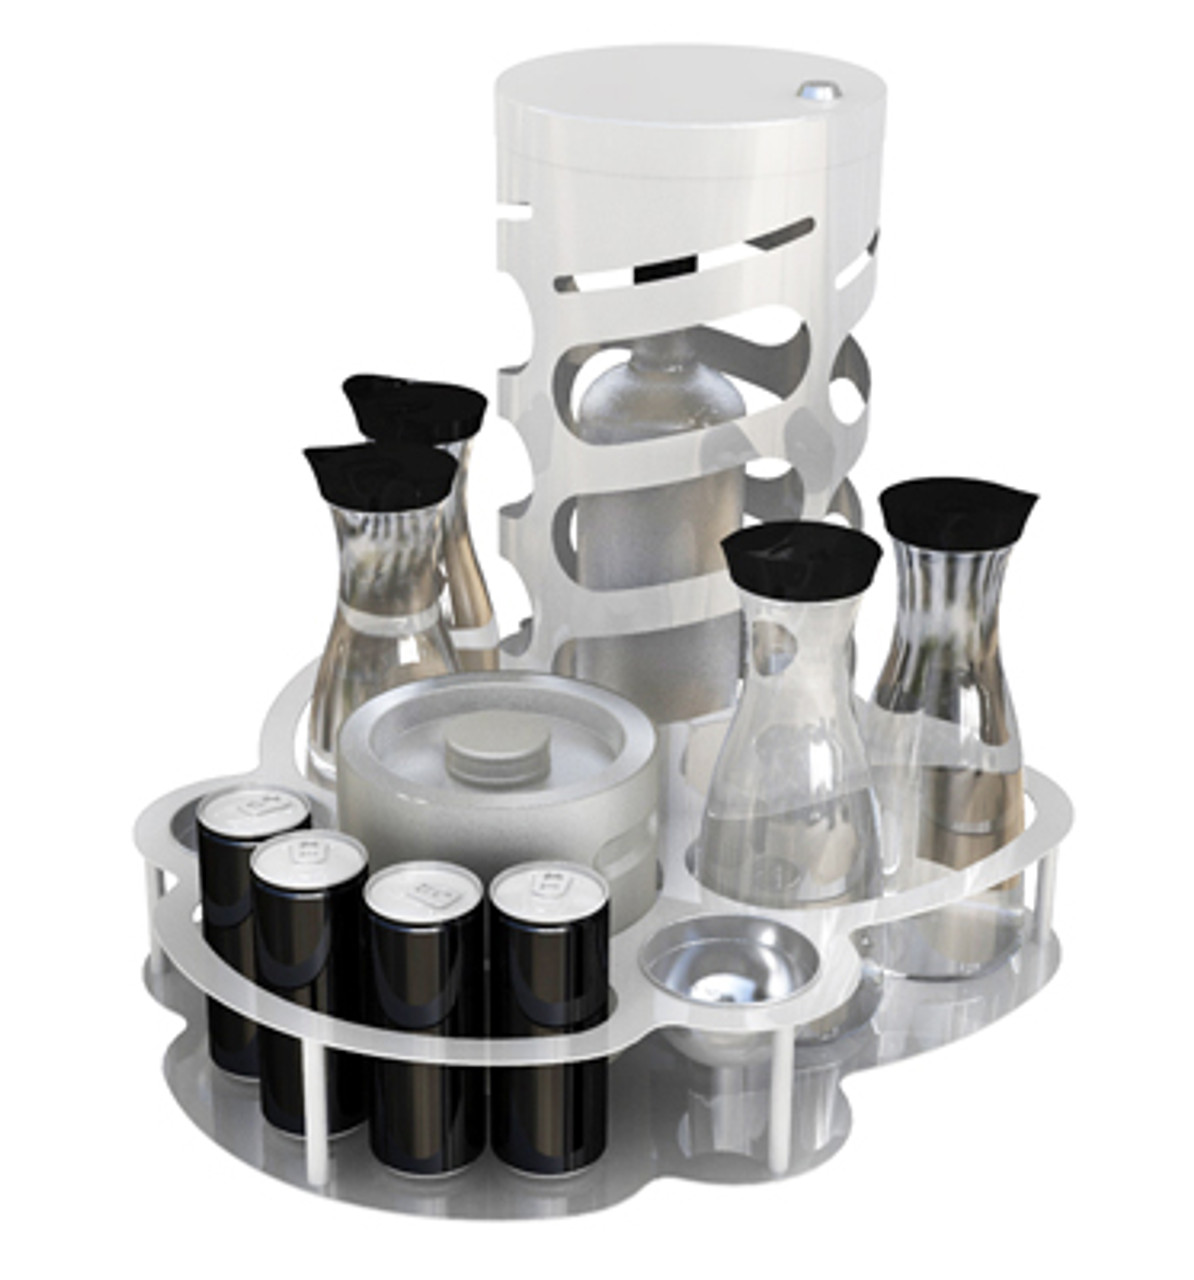 VIP, Champagne, Bottle, Service, Tray, Cage, Lock,